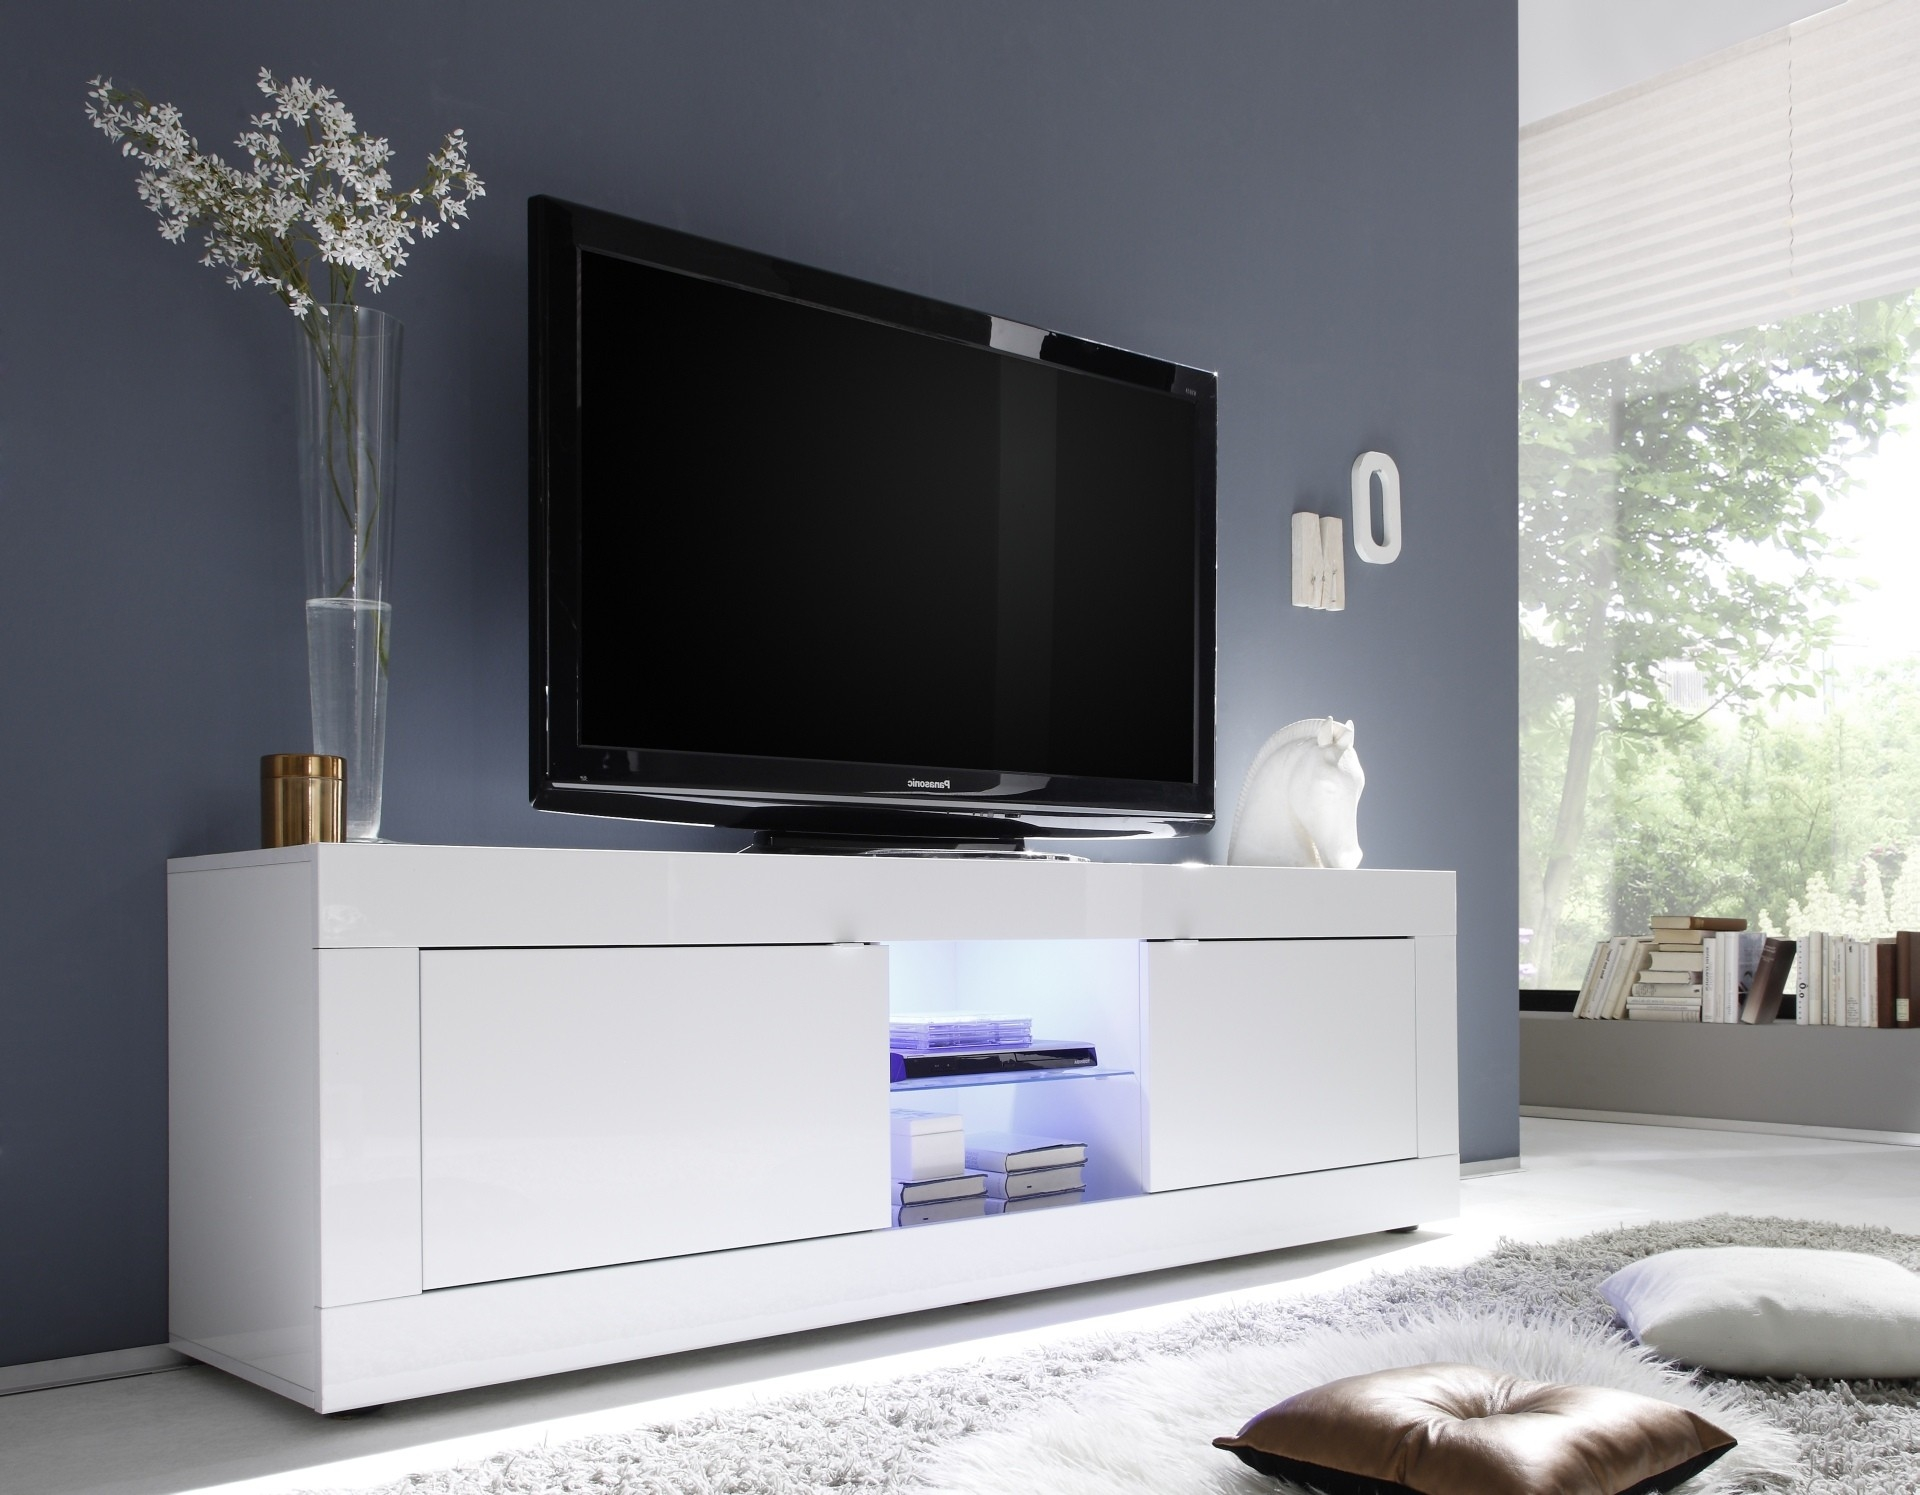 Living Room TV Display Stand Cupboard White LED High Gloss Modern Cabinet Unit